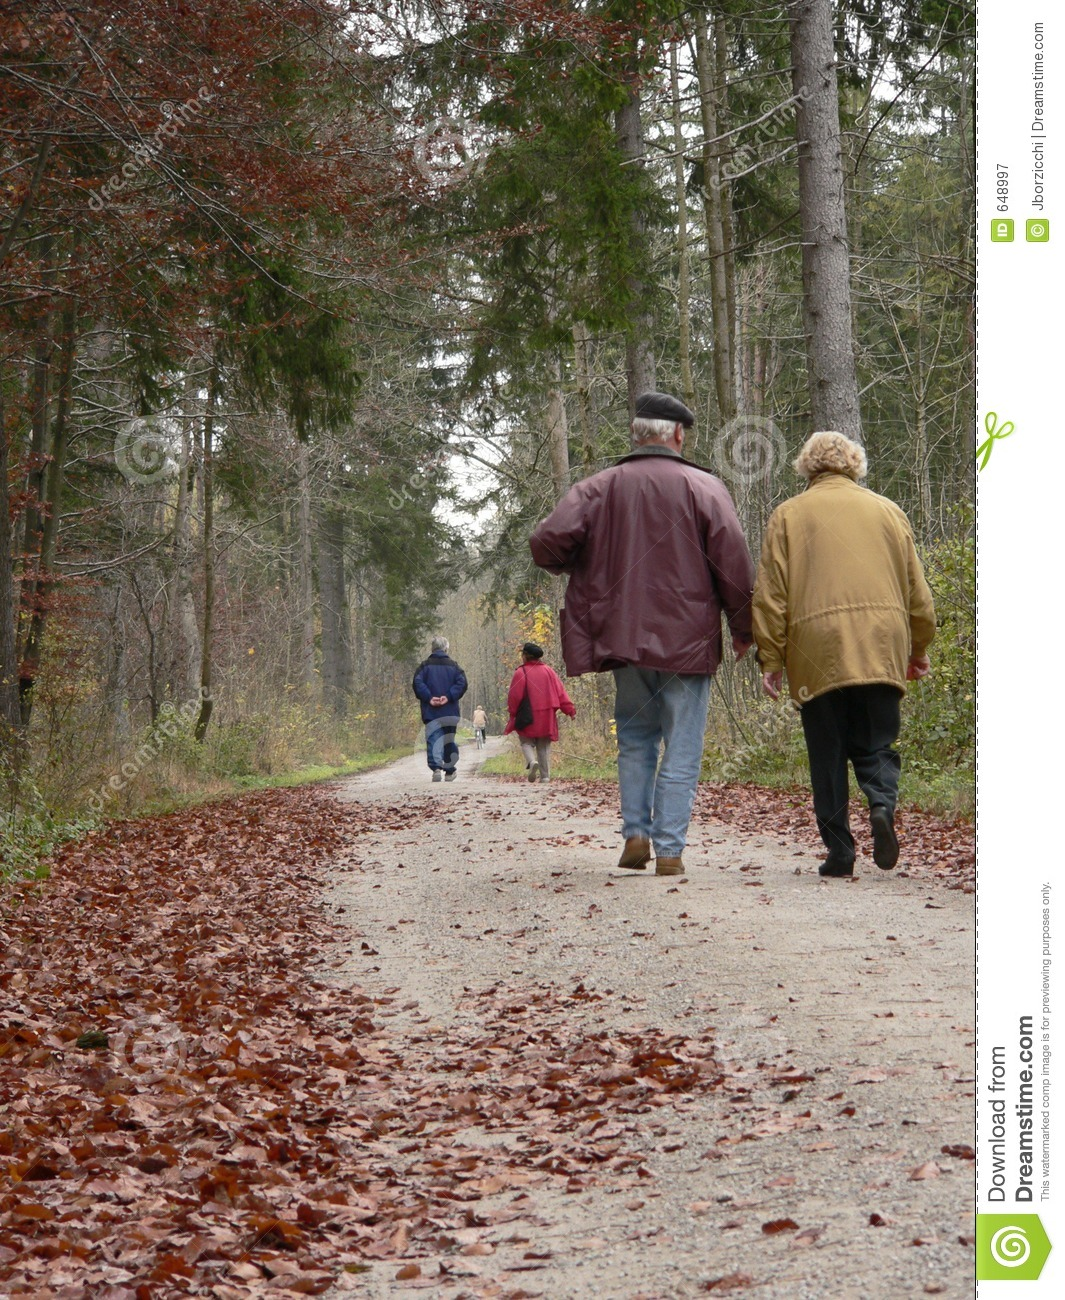 Old People Stock Photos, Royalty-Free Images & Vectors - Shutterstock